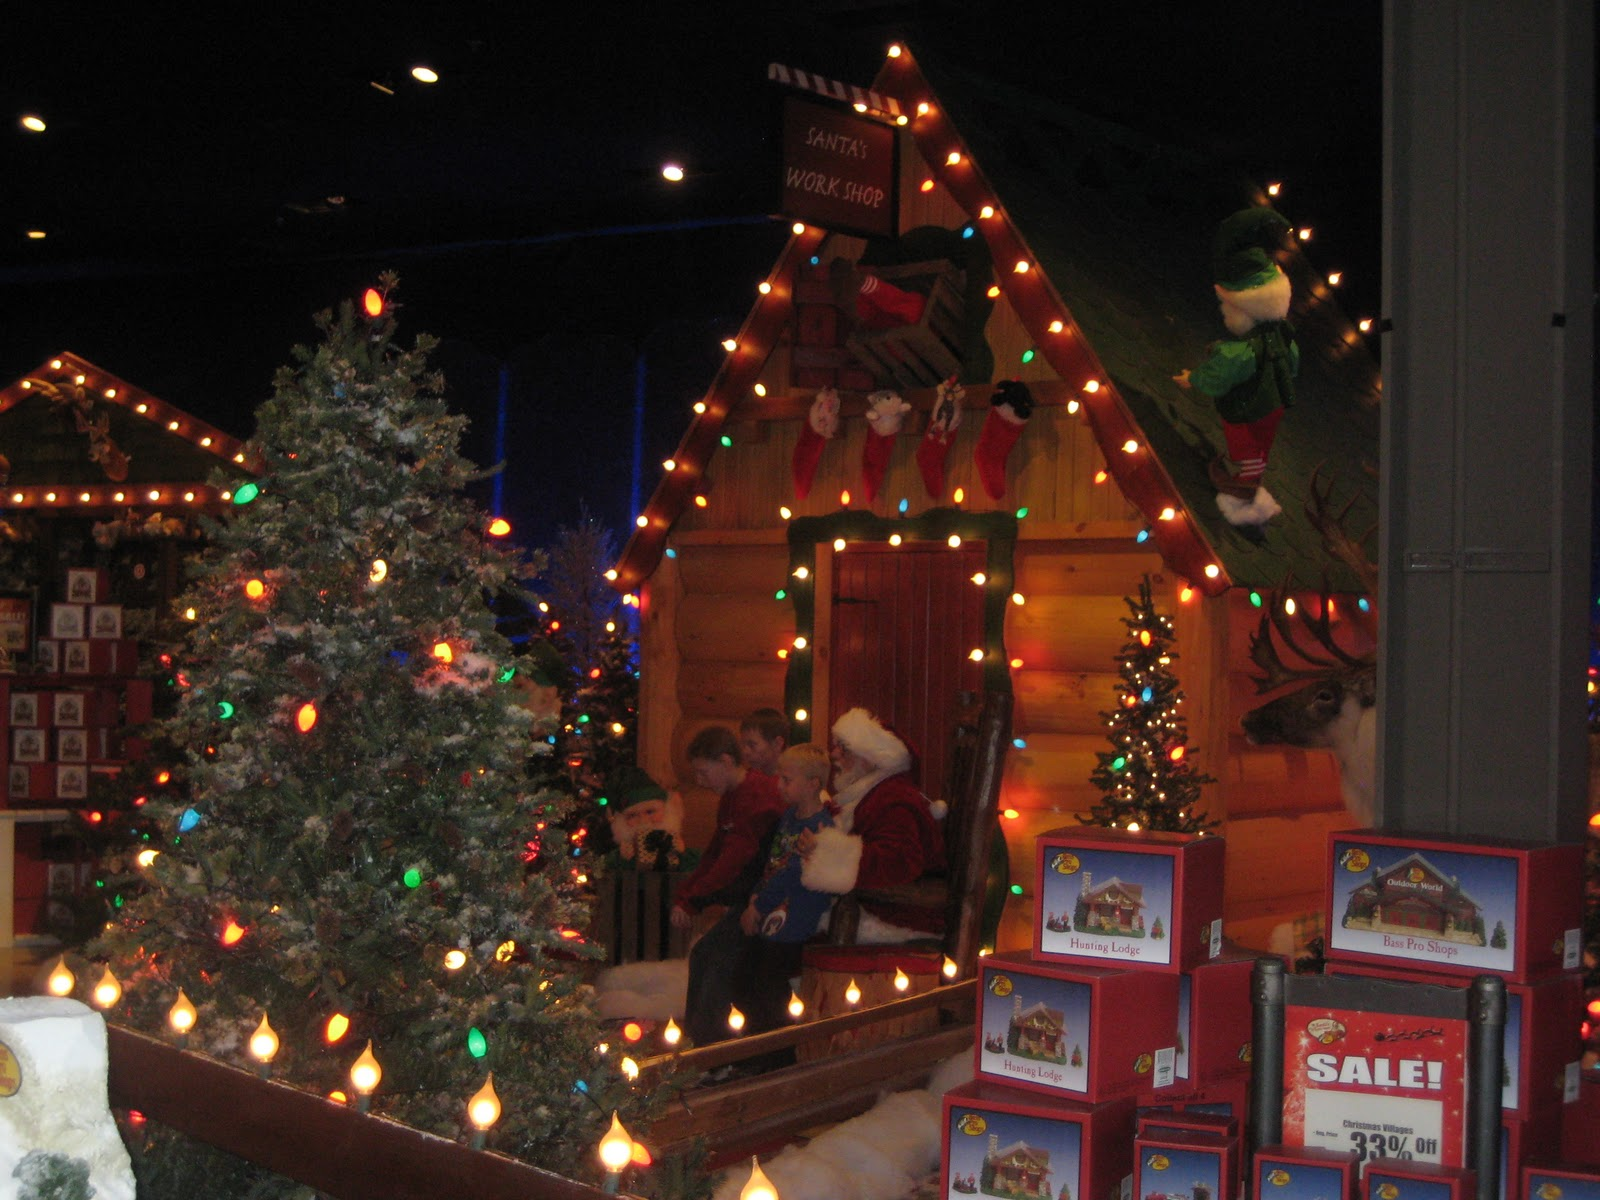 Winter Wonderland Christmas at Bass Pro Shops By: Stephanie ...